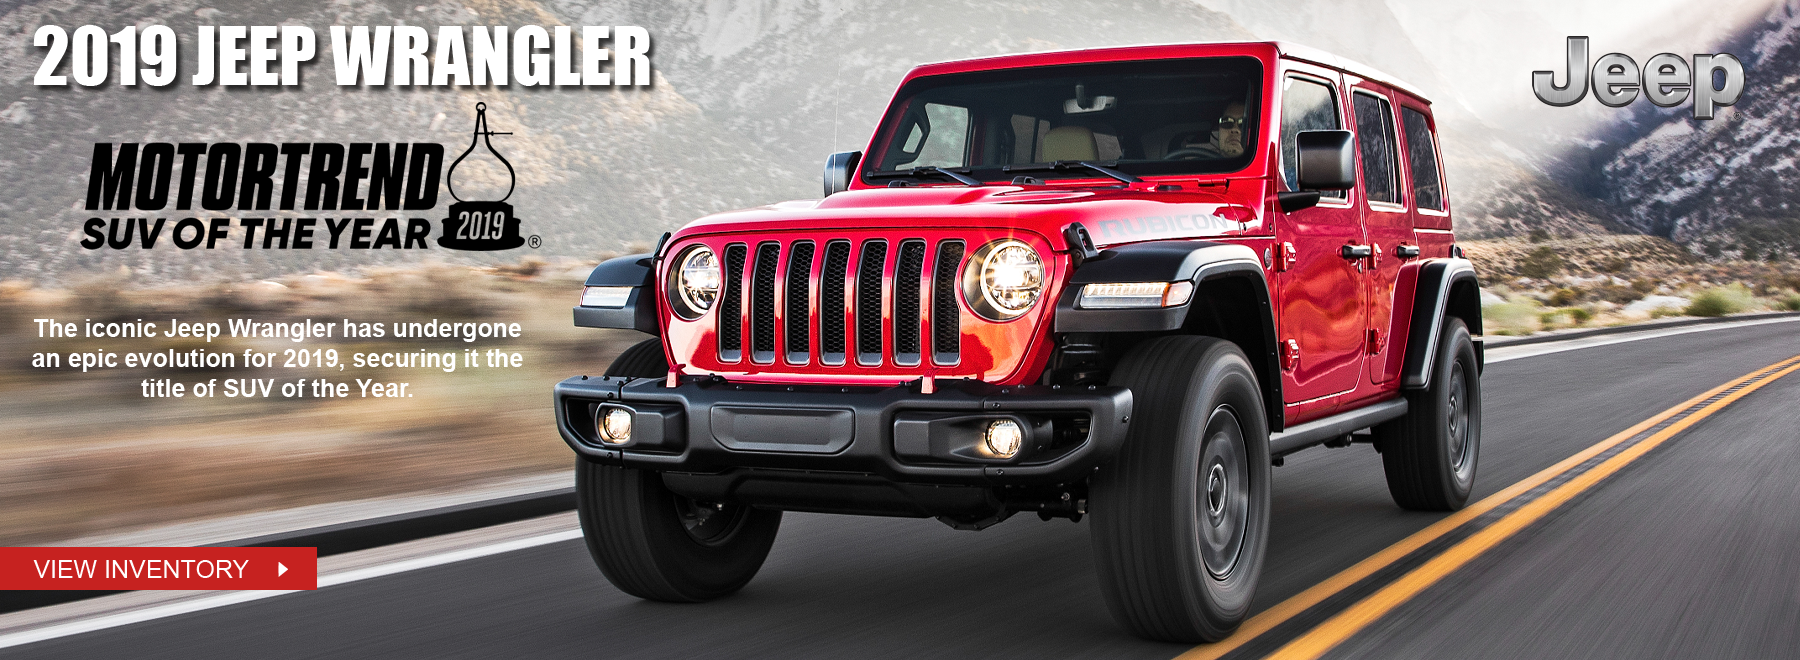 Dennis Dillon Jeep >> Dennis Dillon Chrysler Dodge Jeep Ram | Auto Dealer and Service Center, ID